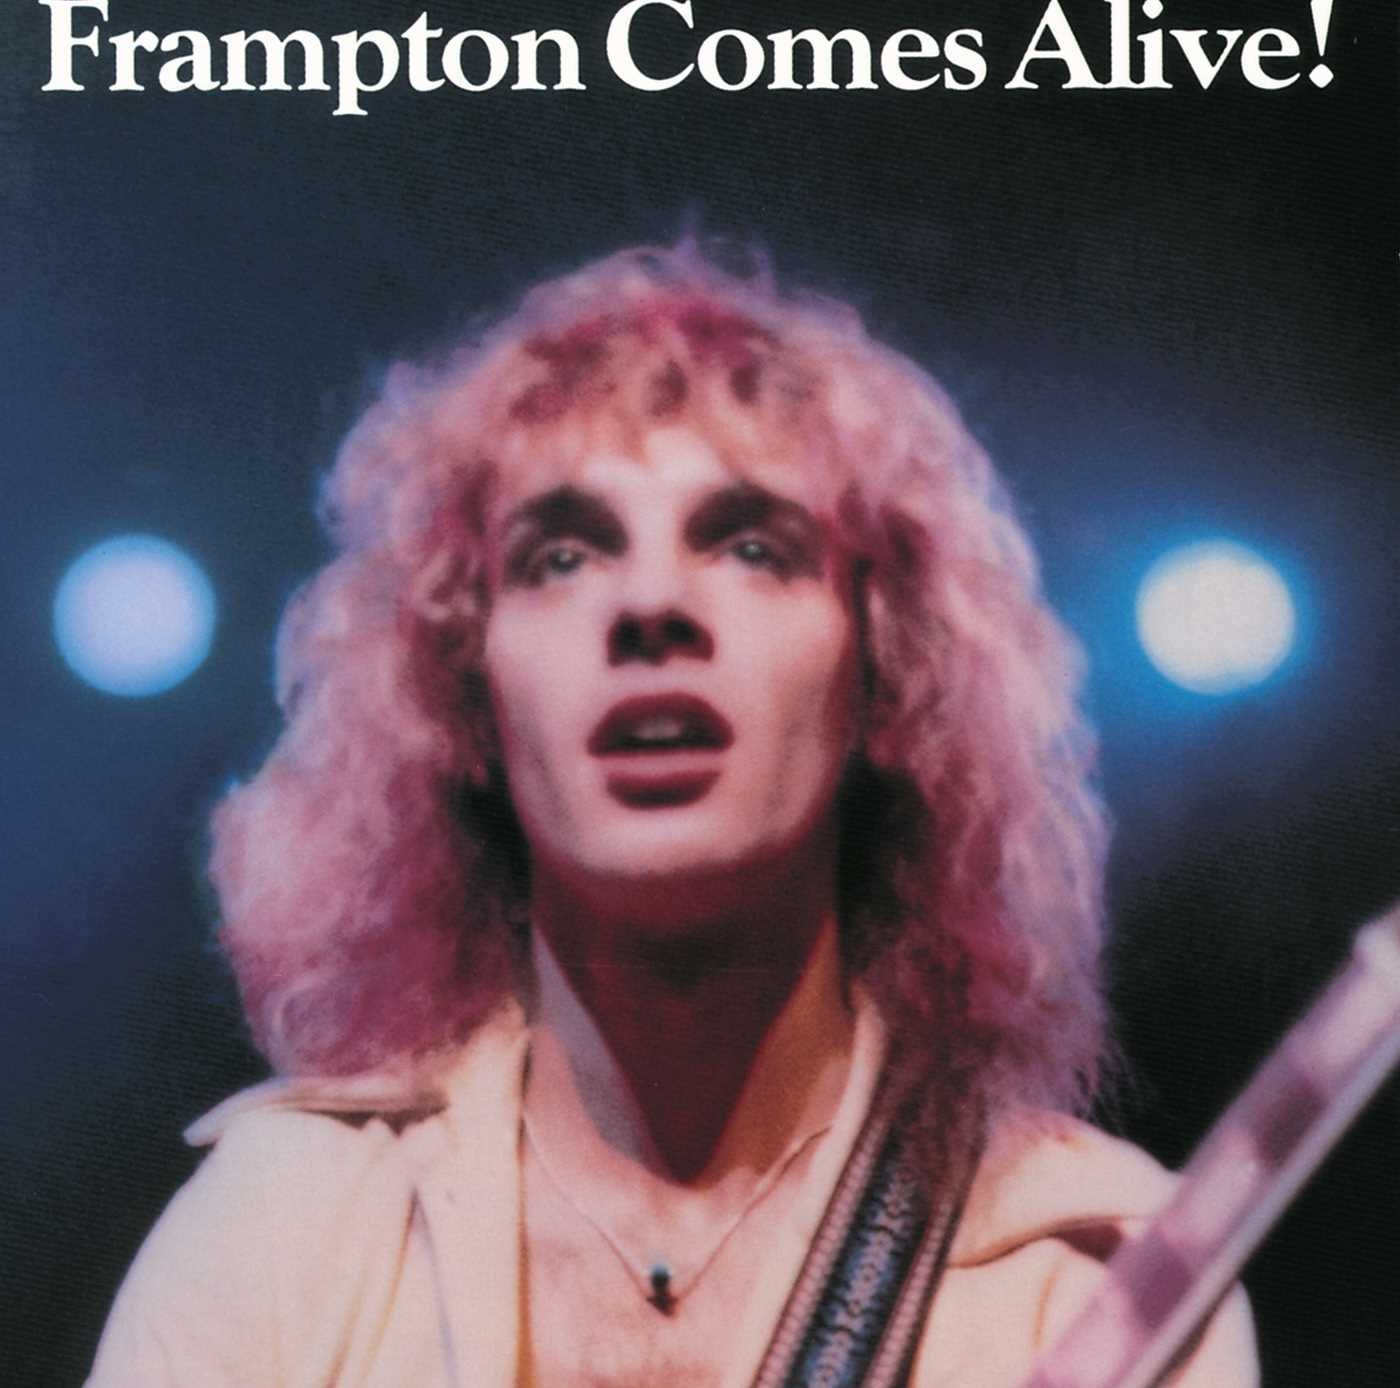 Frampton Comes Alive! by A&M (USA)